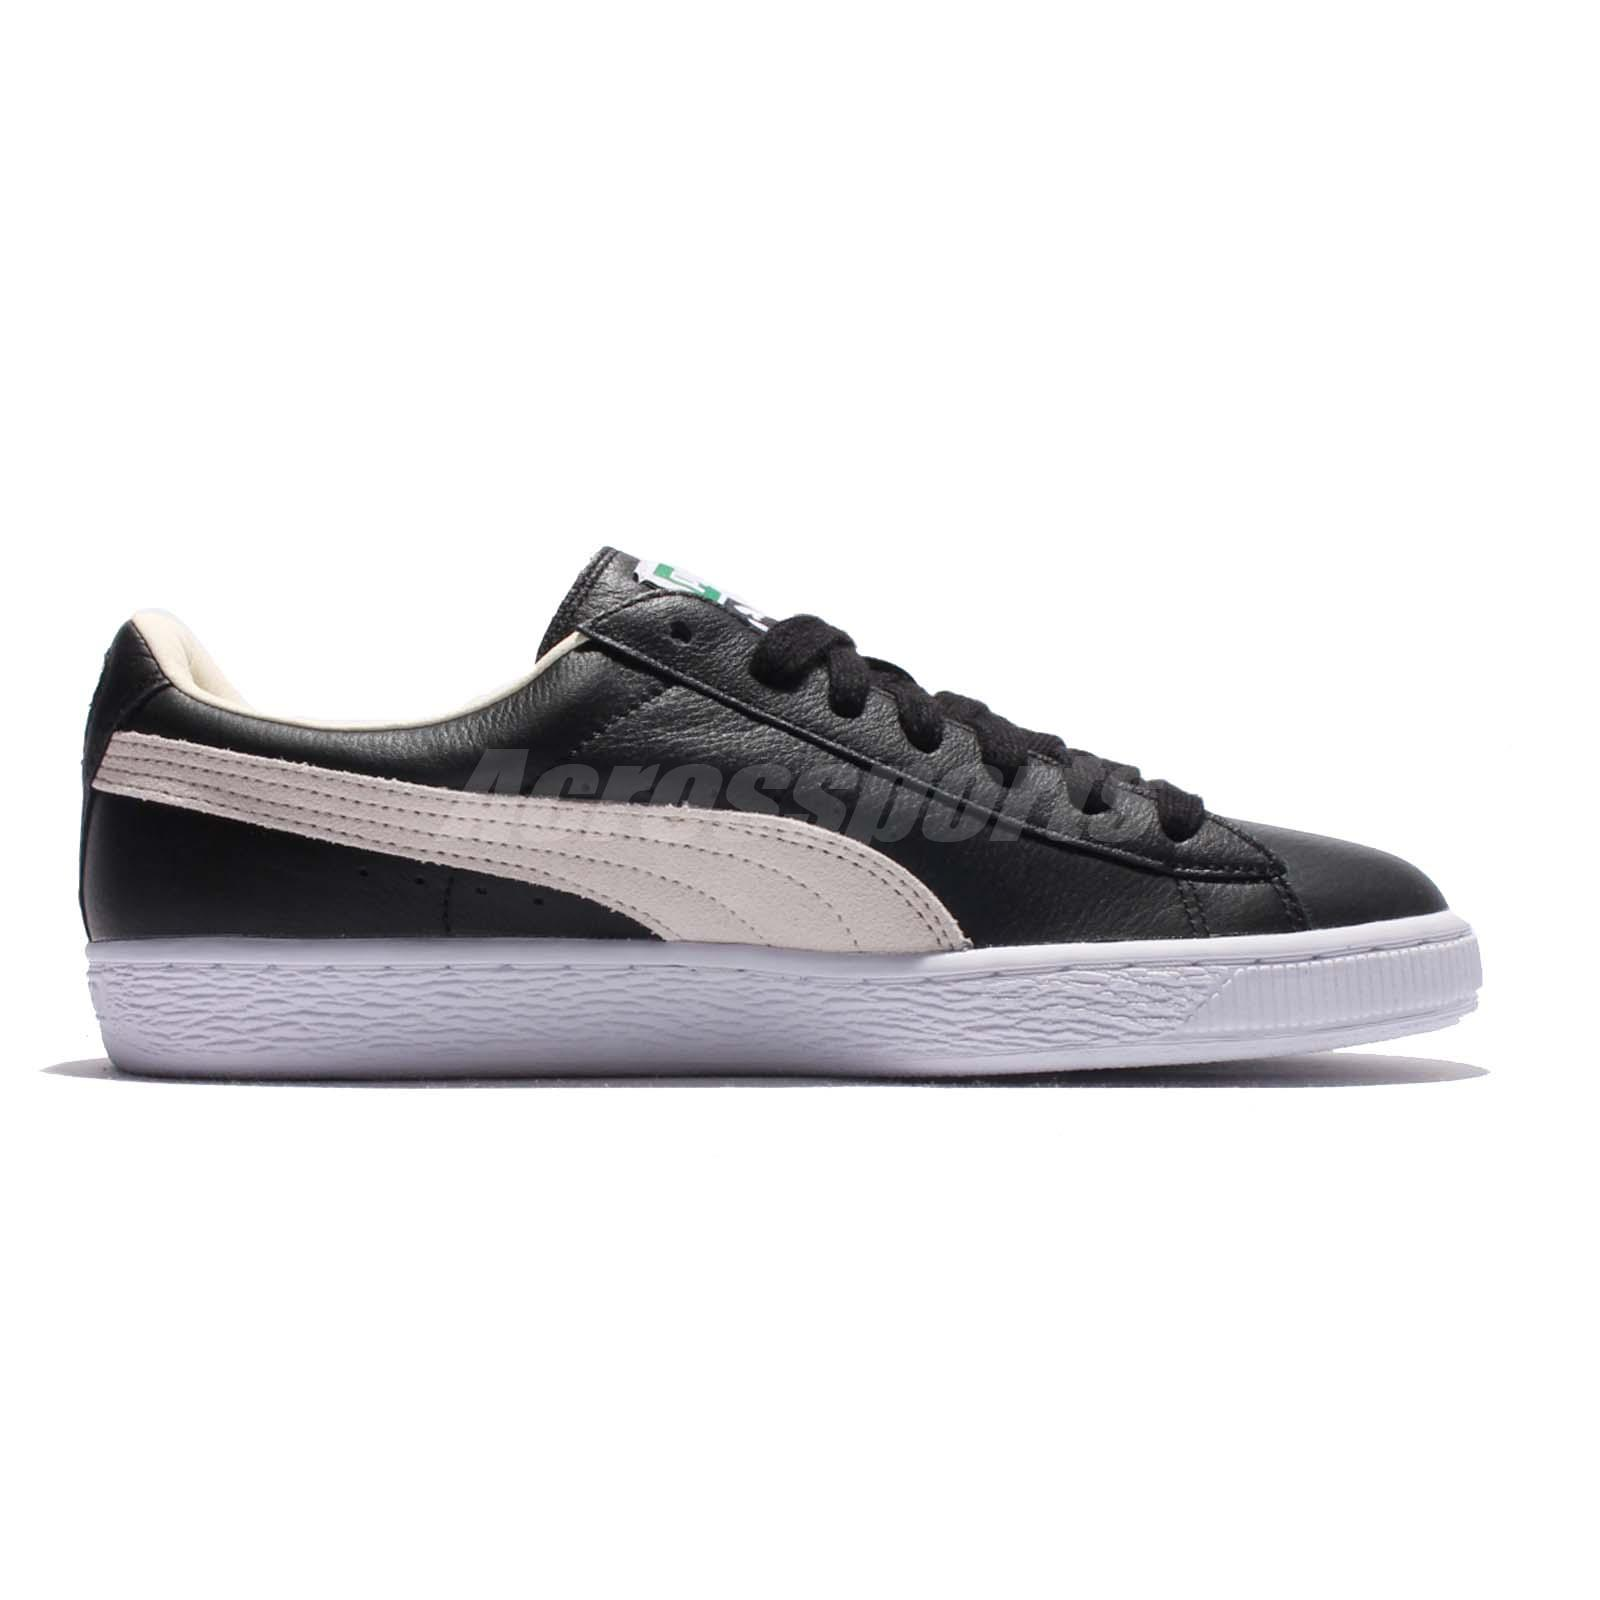 Puma Basket Classic Black White Mens Casual Shoes Sneakers Trainers ... 7372e7bff